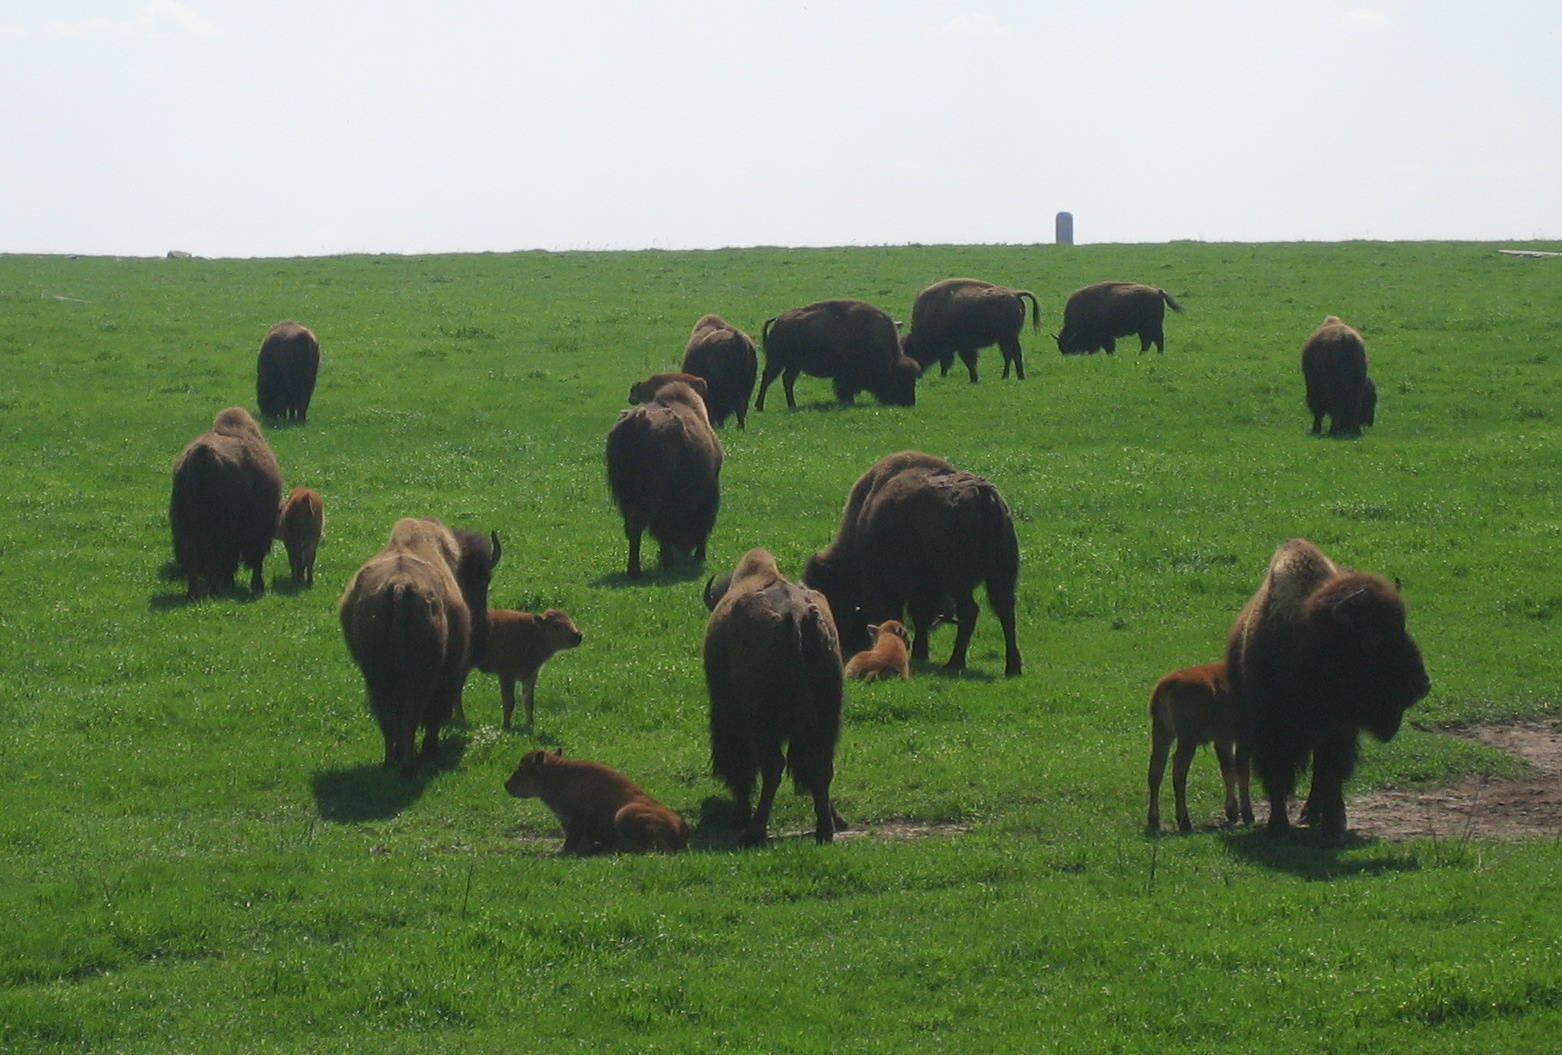 http://upload.wikimedia.org/wikipedia/commons/b/b7/Bison_at_Blue_Mounds_State_Park.jpg